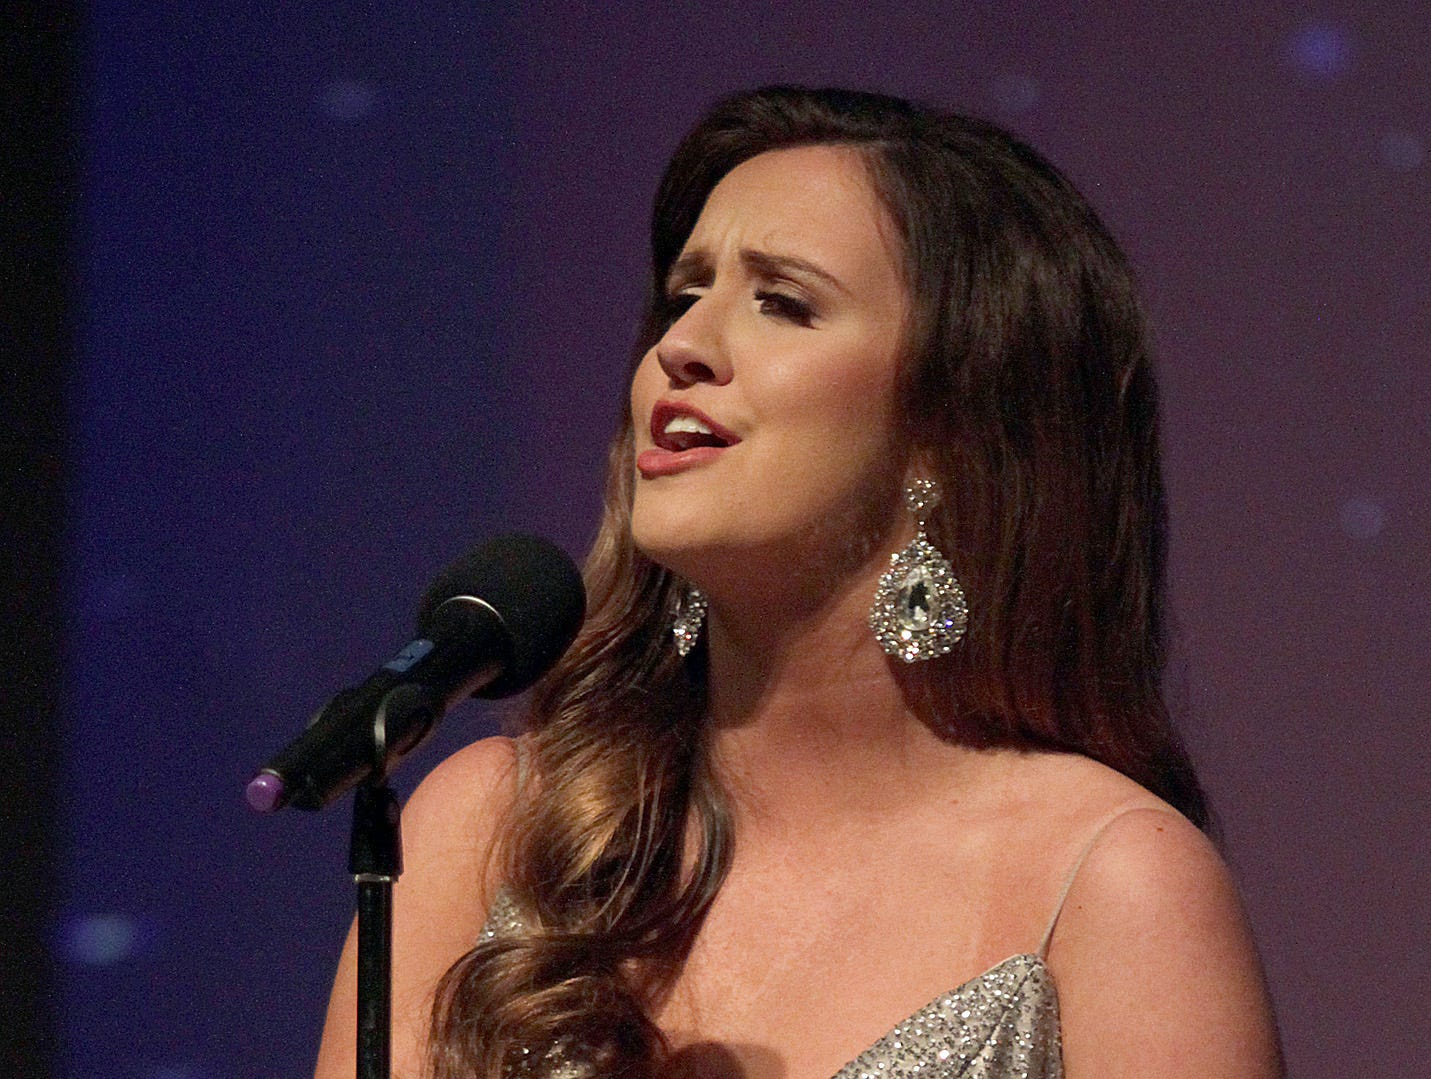 Brooklyn Tippett sings at Miss Tennessee's Outstanding Teen Pageant in Gallatin, TN on Saturday, March 30, 2019.